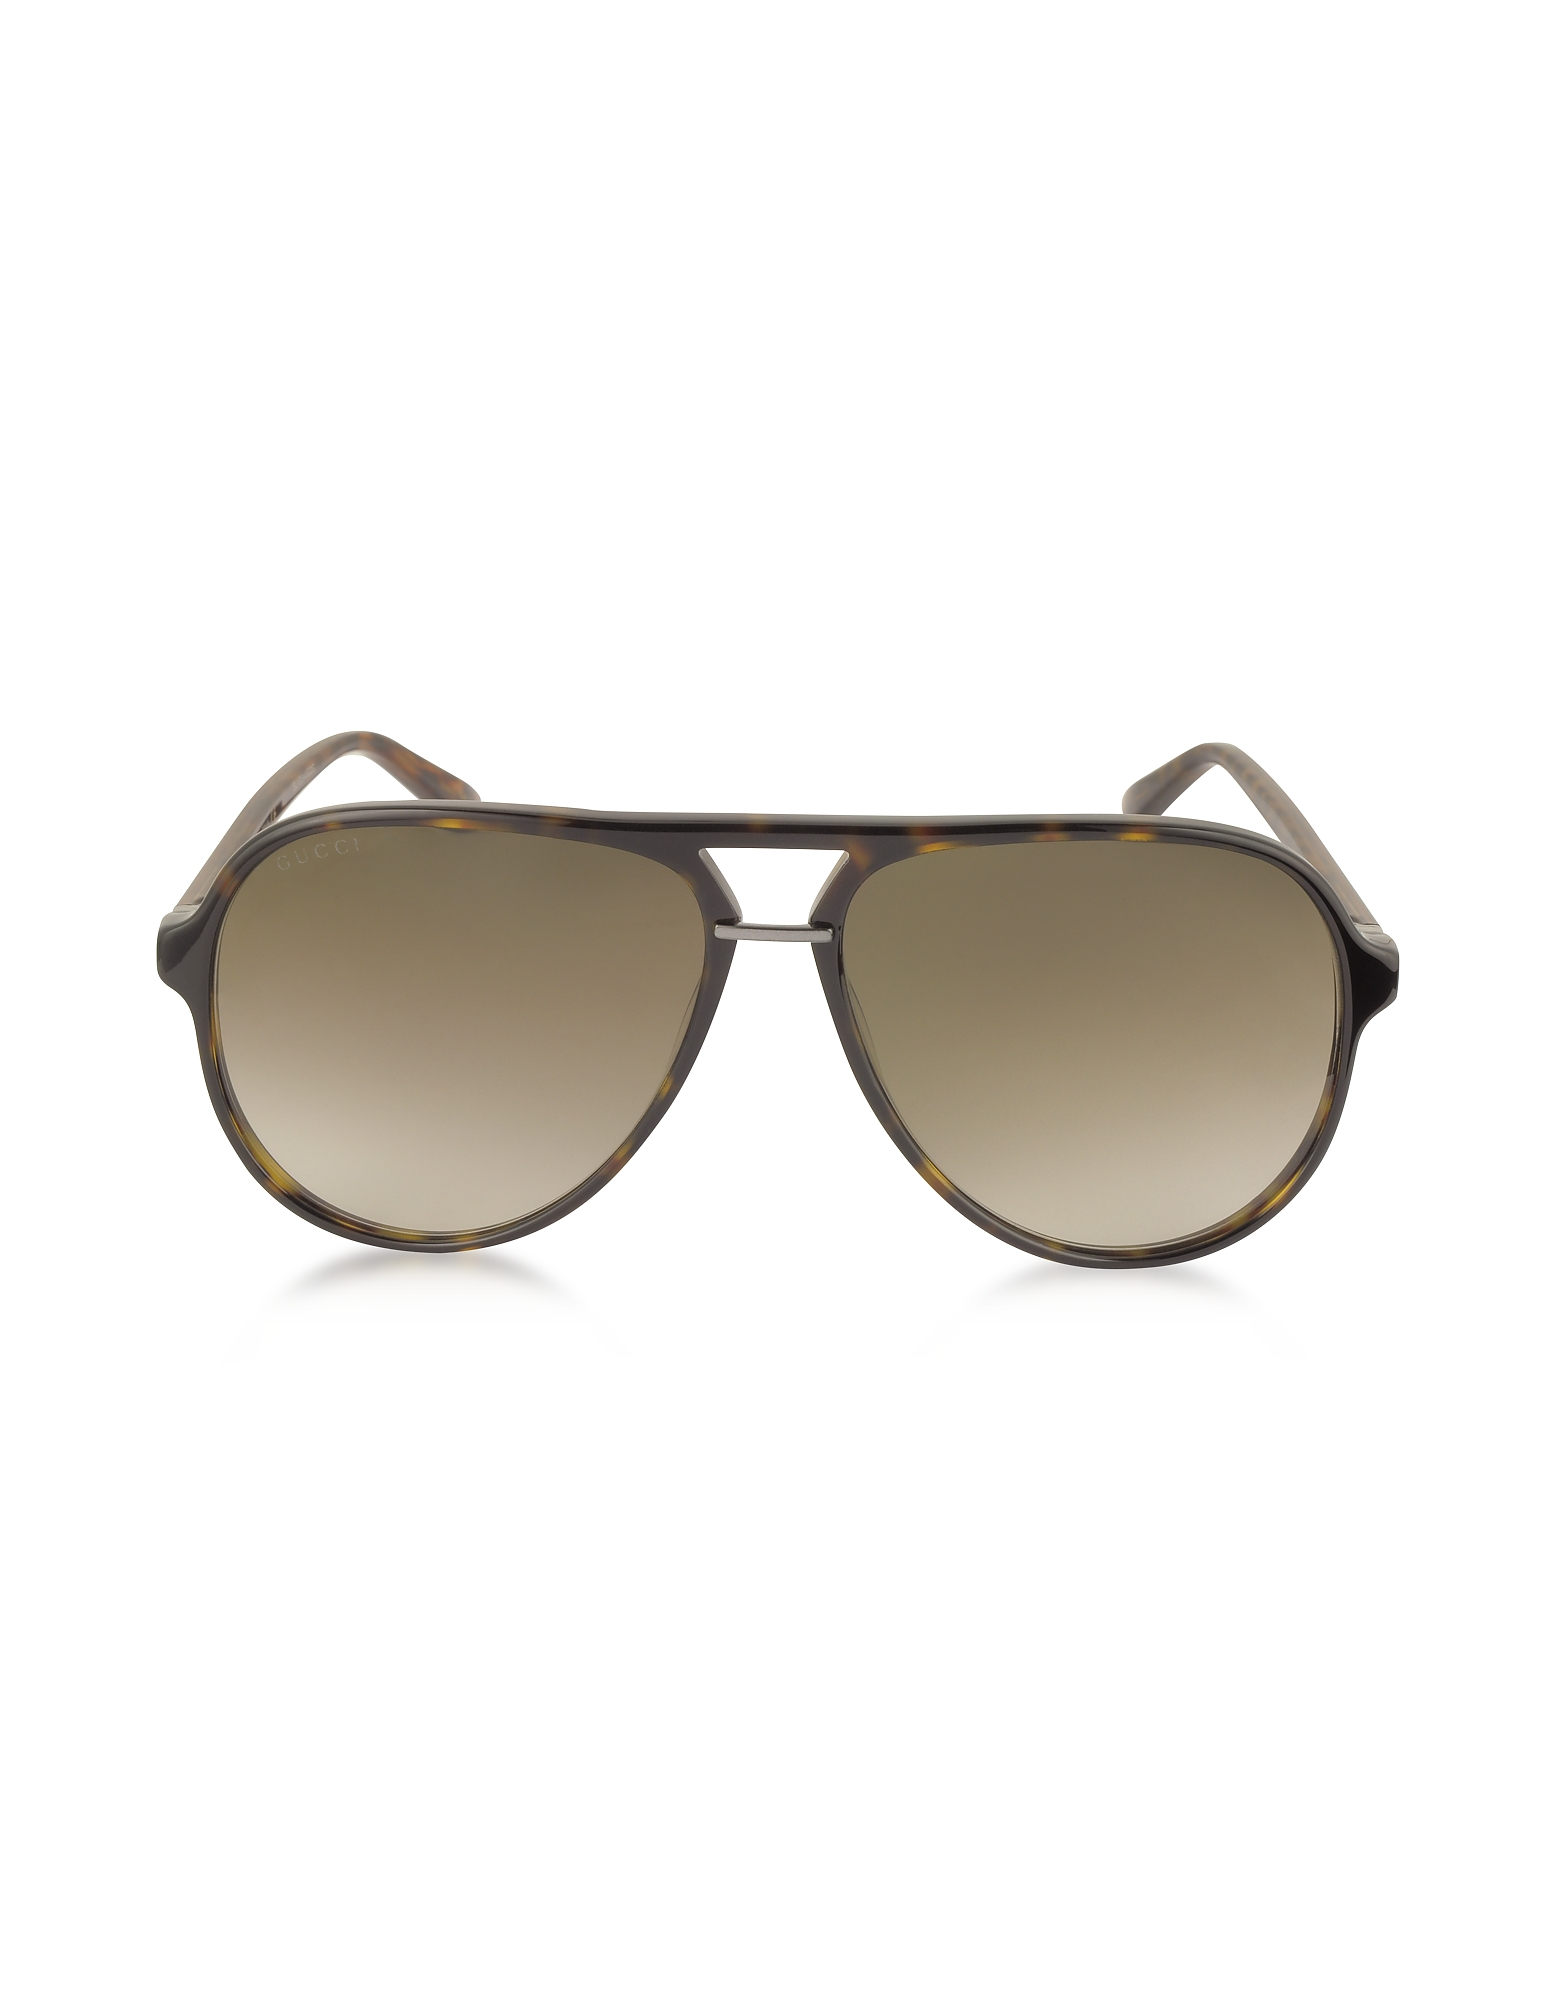 Gucci Sunglasses, GG0015S Acetate Aviator Men's Sunglasses